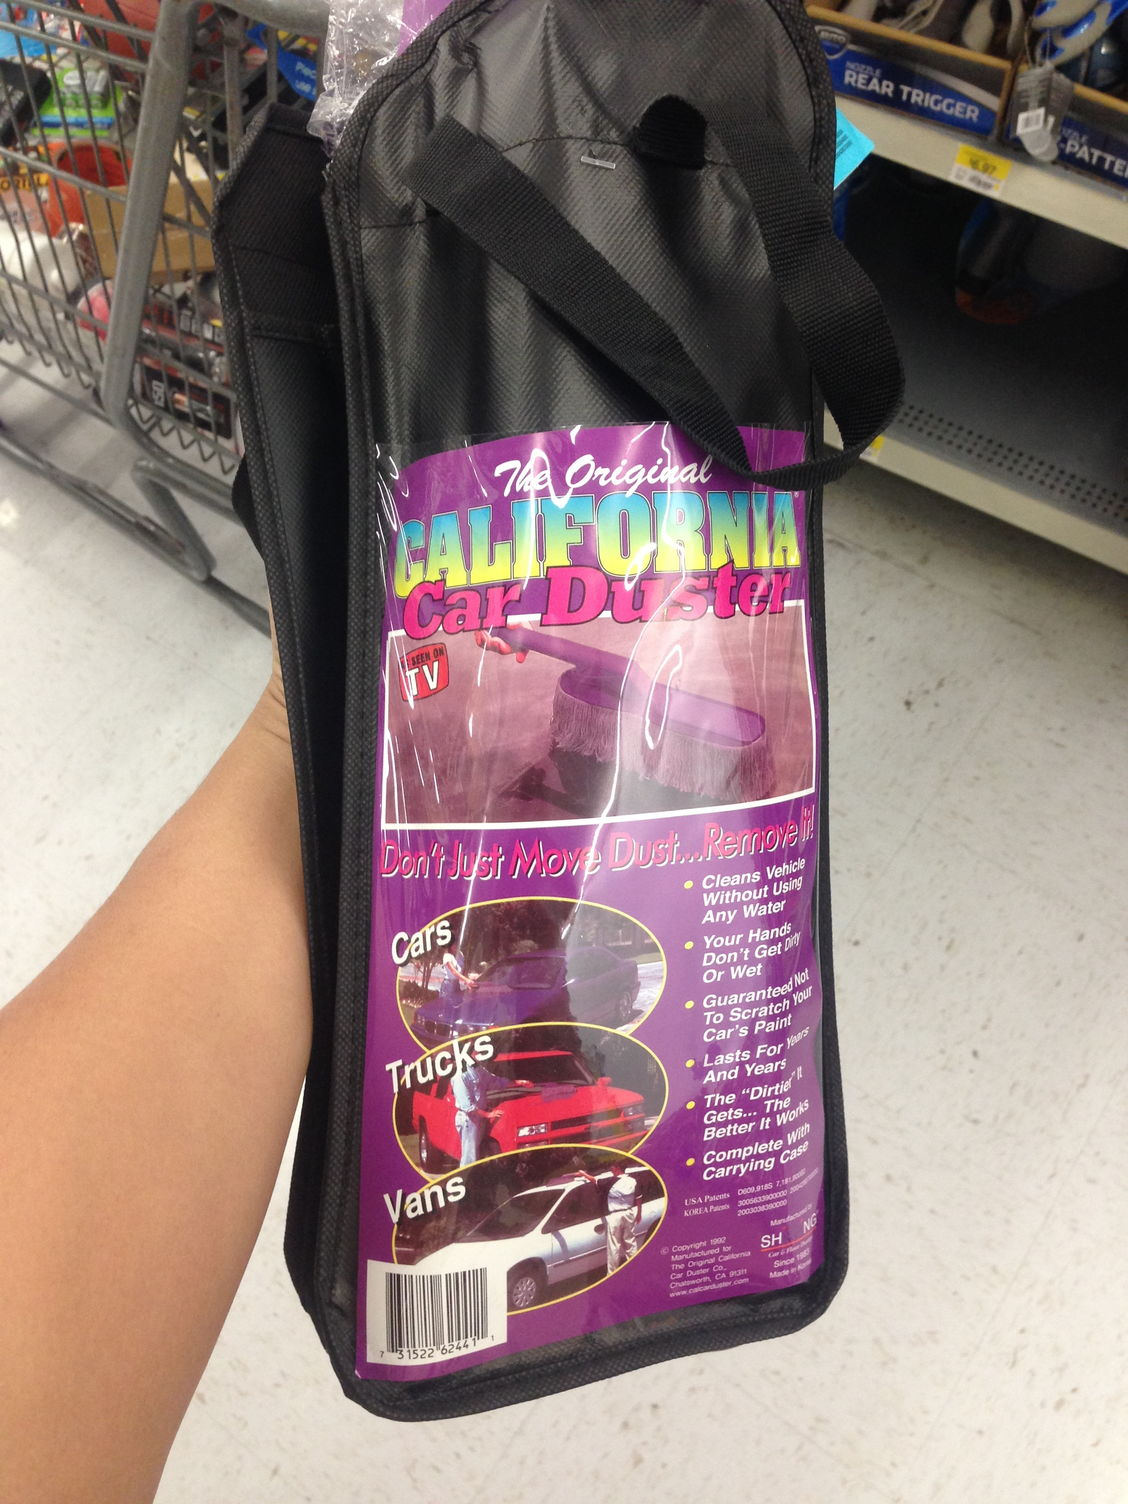 Saw them at walmart it has a purple handle with a gray mophead